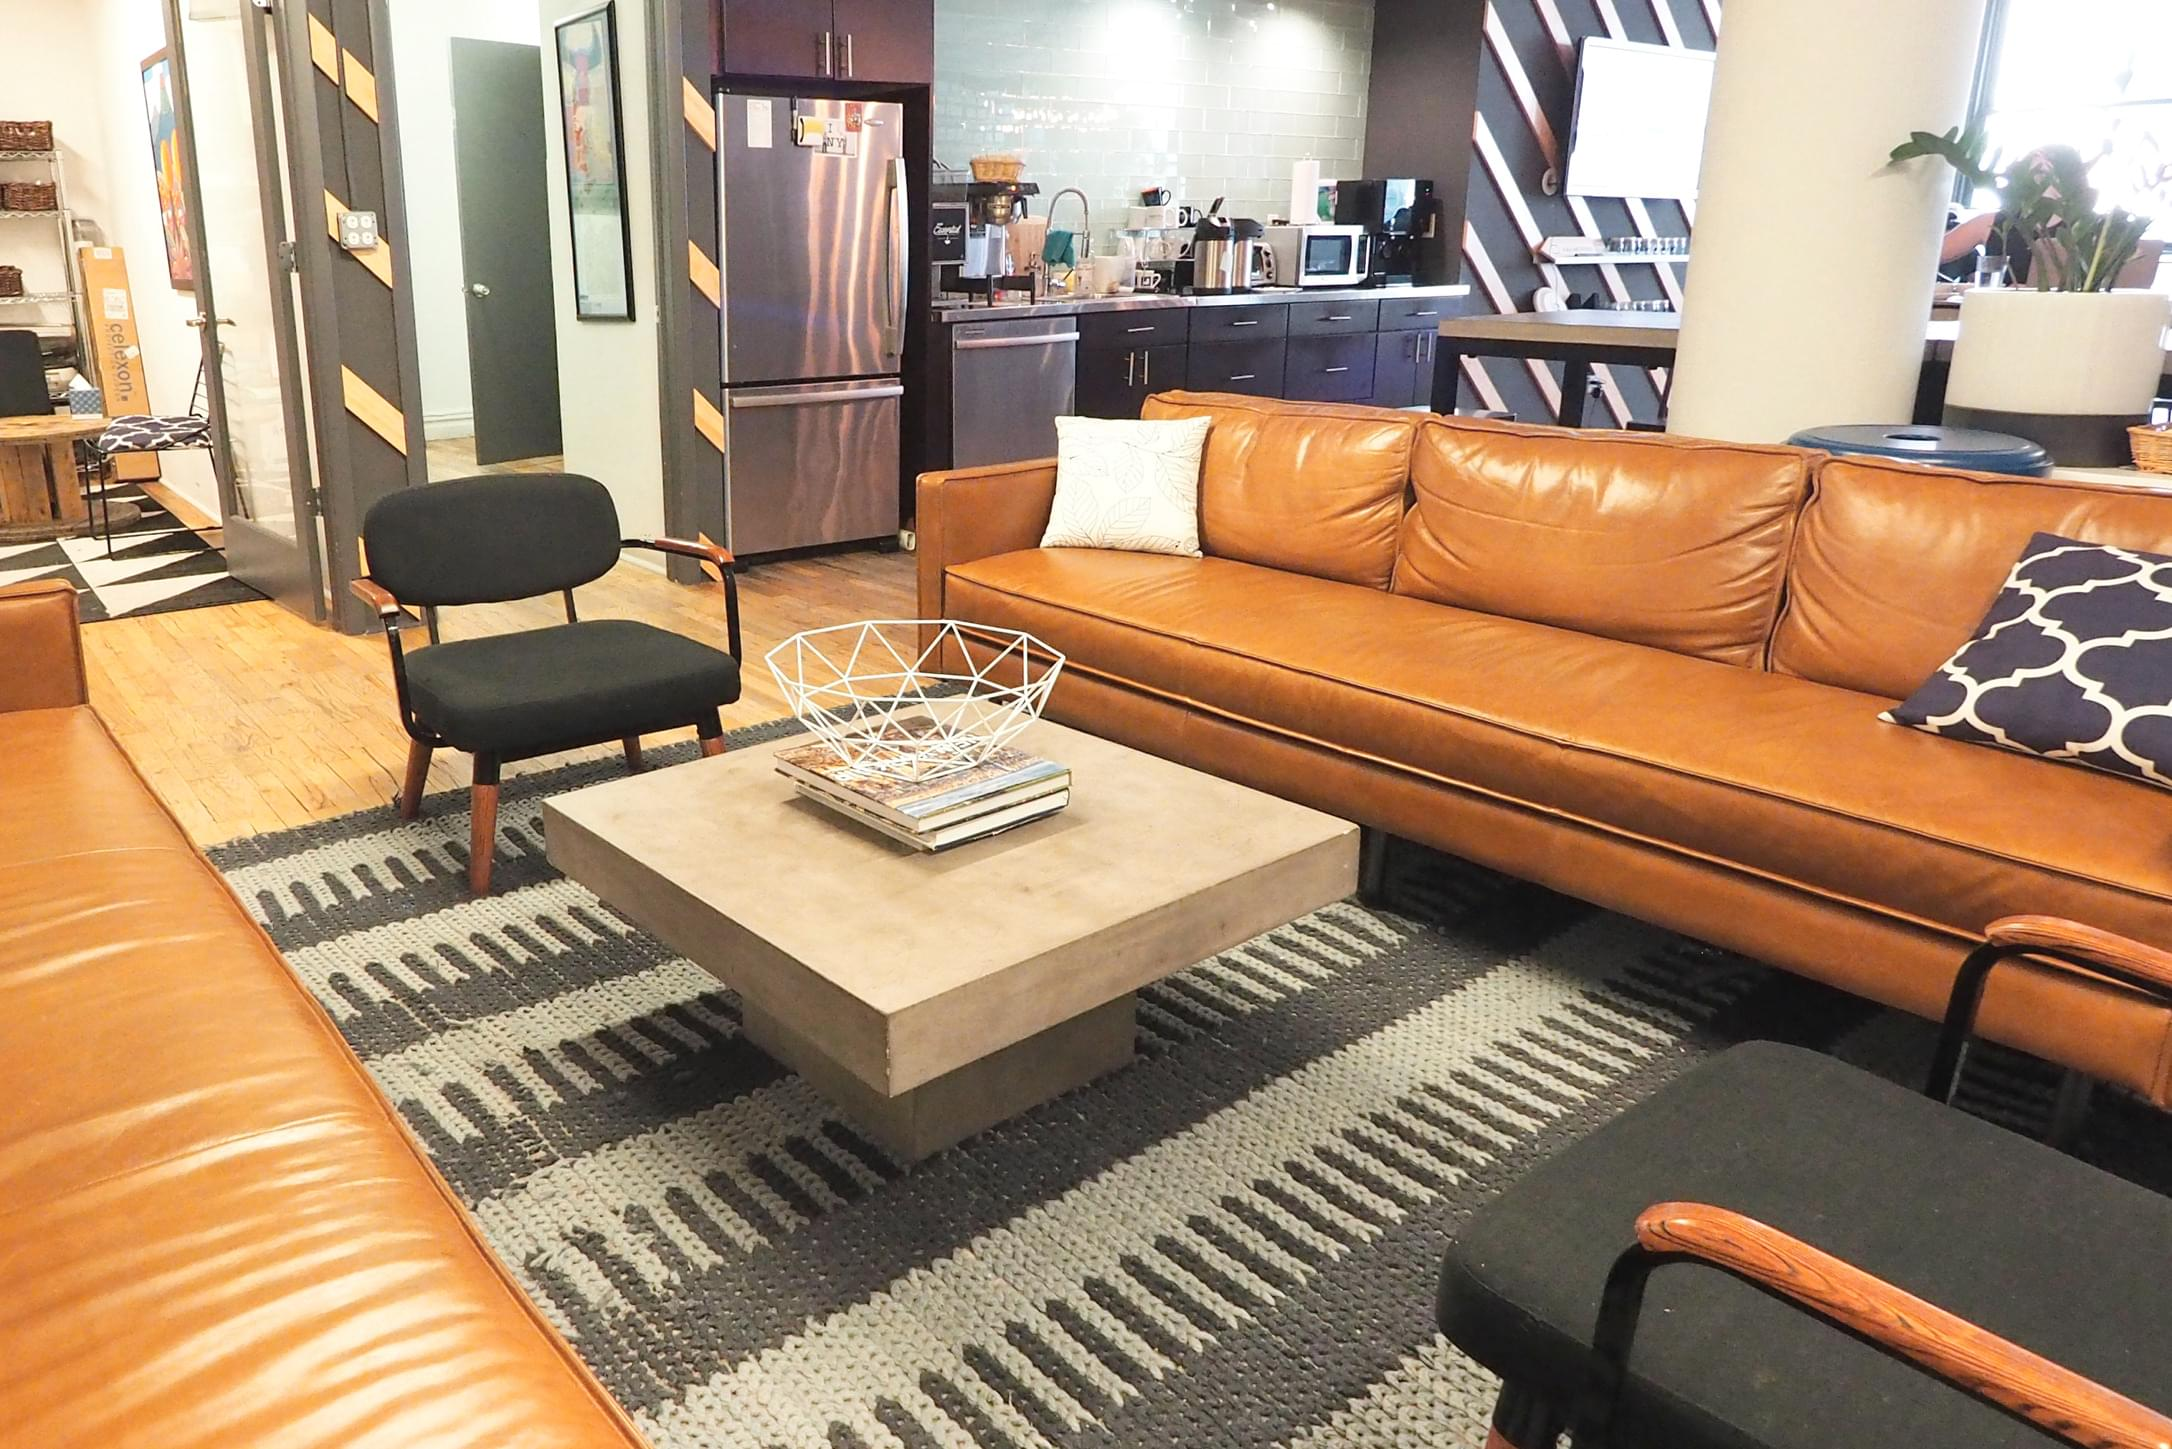 An office lounge area with long leather couch, coffee table, and kitchen in the background